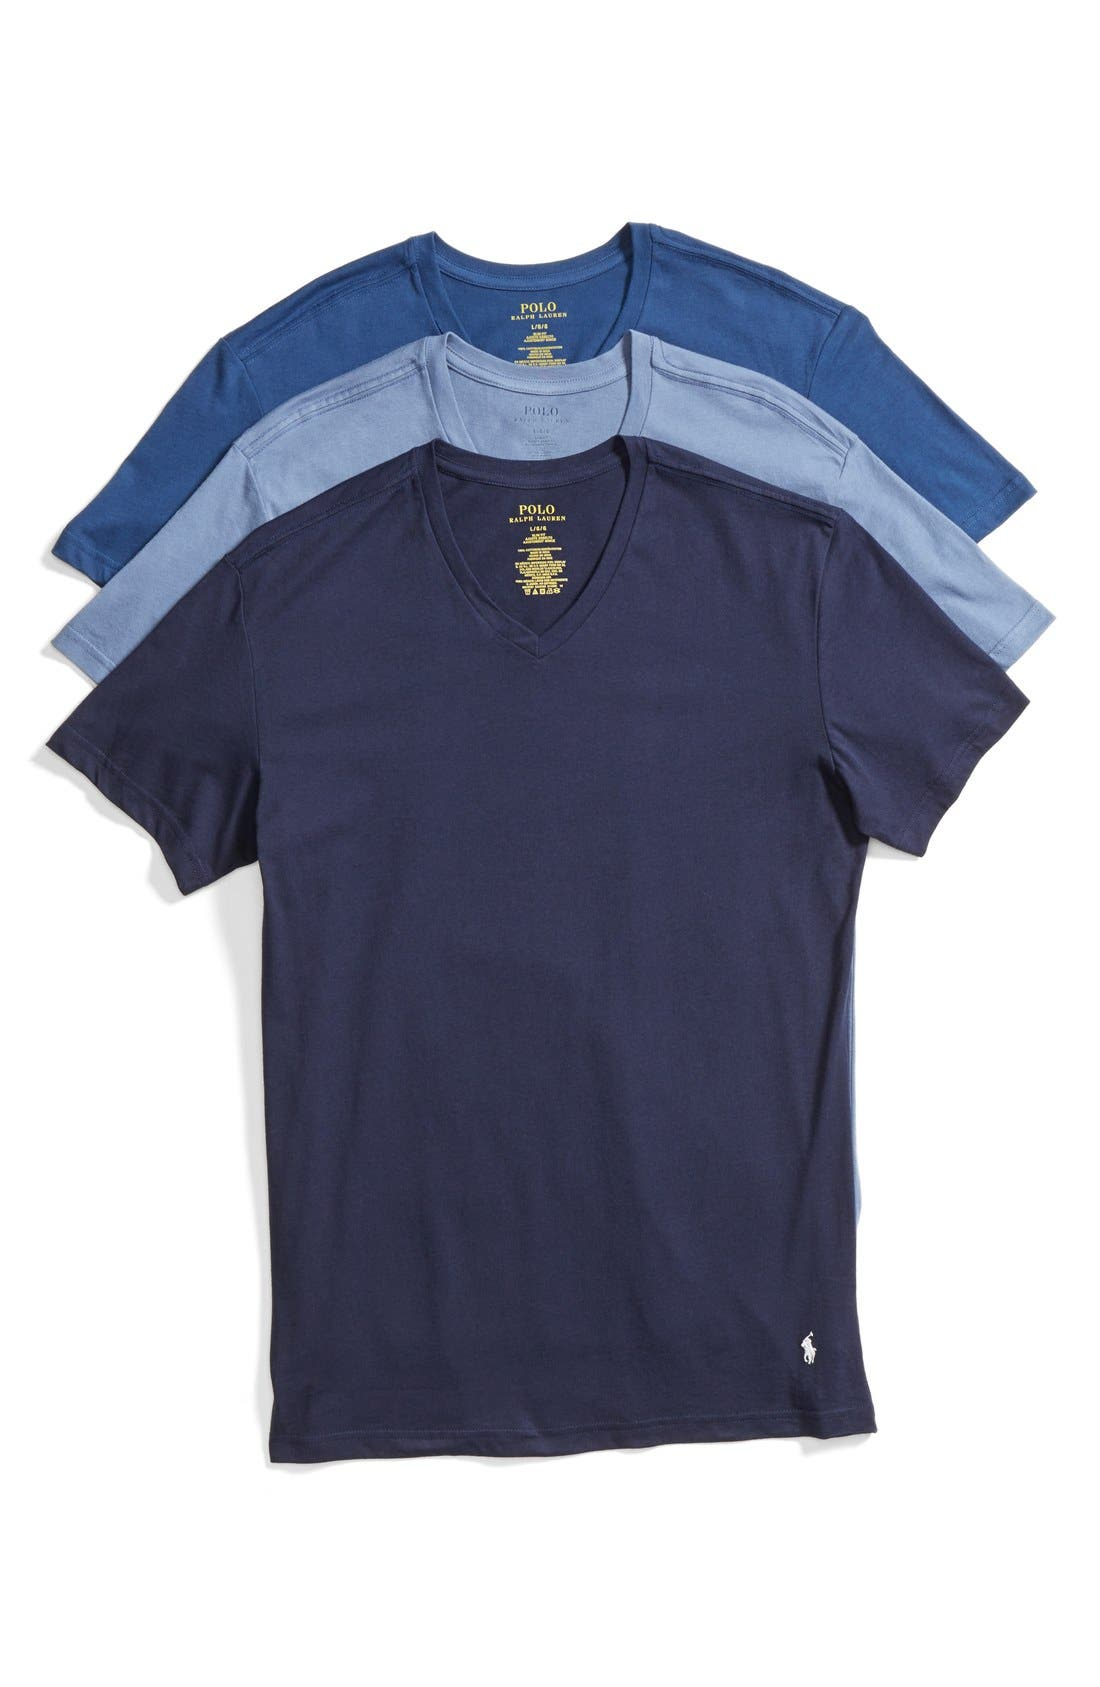 Alternate Image 1 Selected - Polo Ralph Lauren 3-Pack Trim Fit T-Shirt